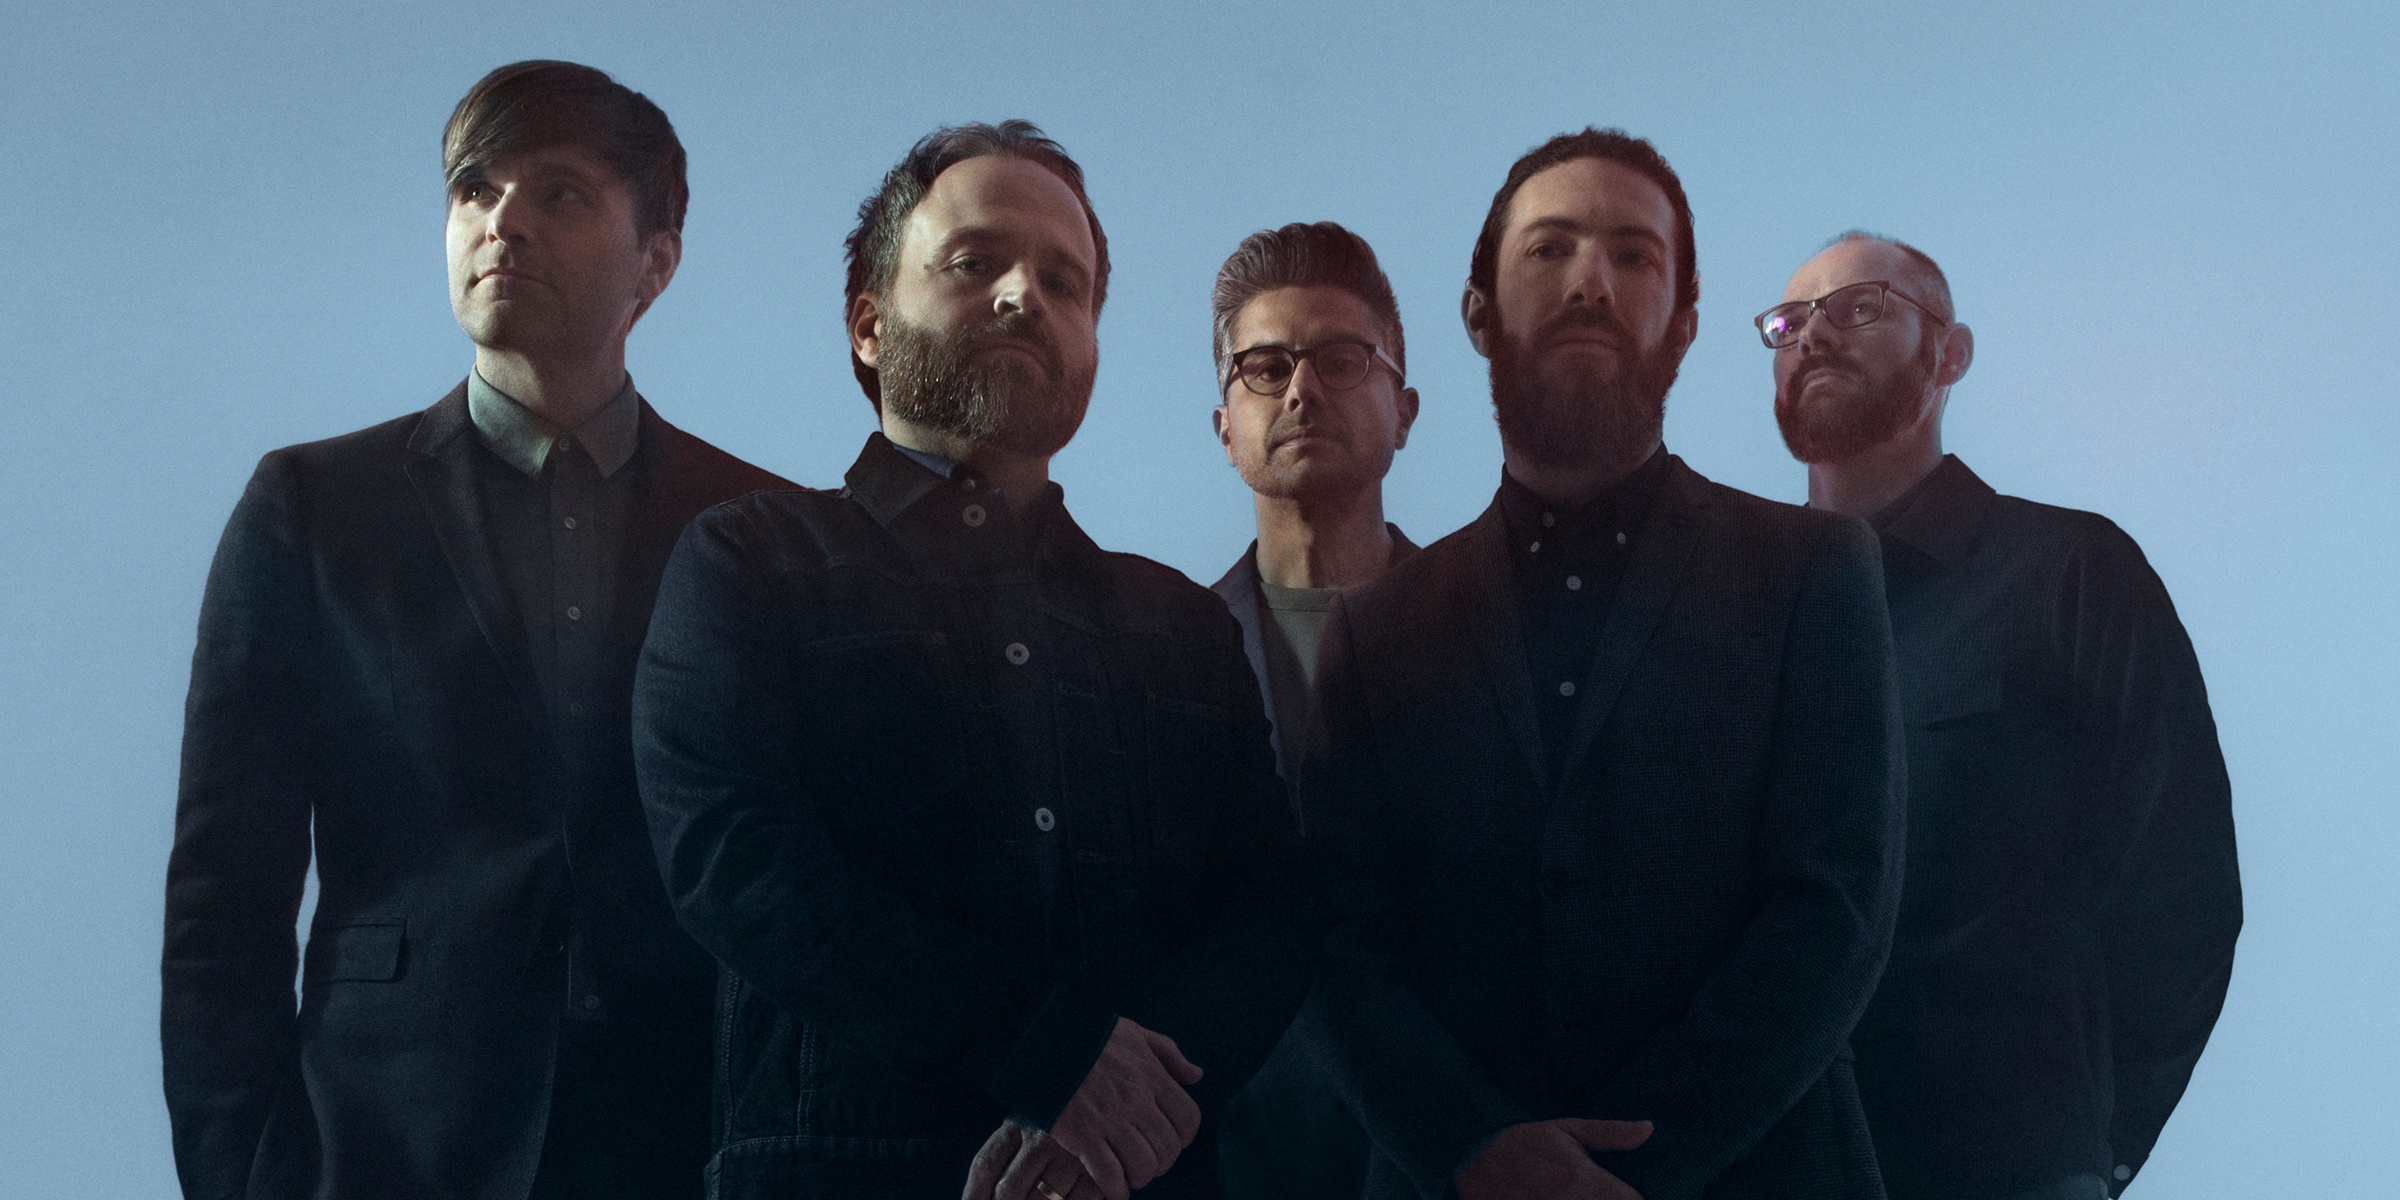 BREAKING: Death Cab For Cutie will perform at the Esplanade Theatre in Singapore this July